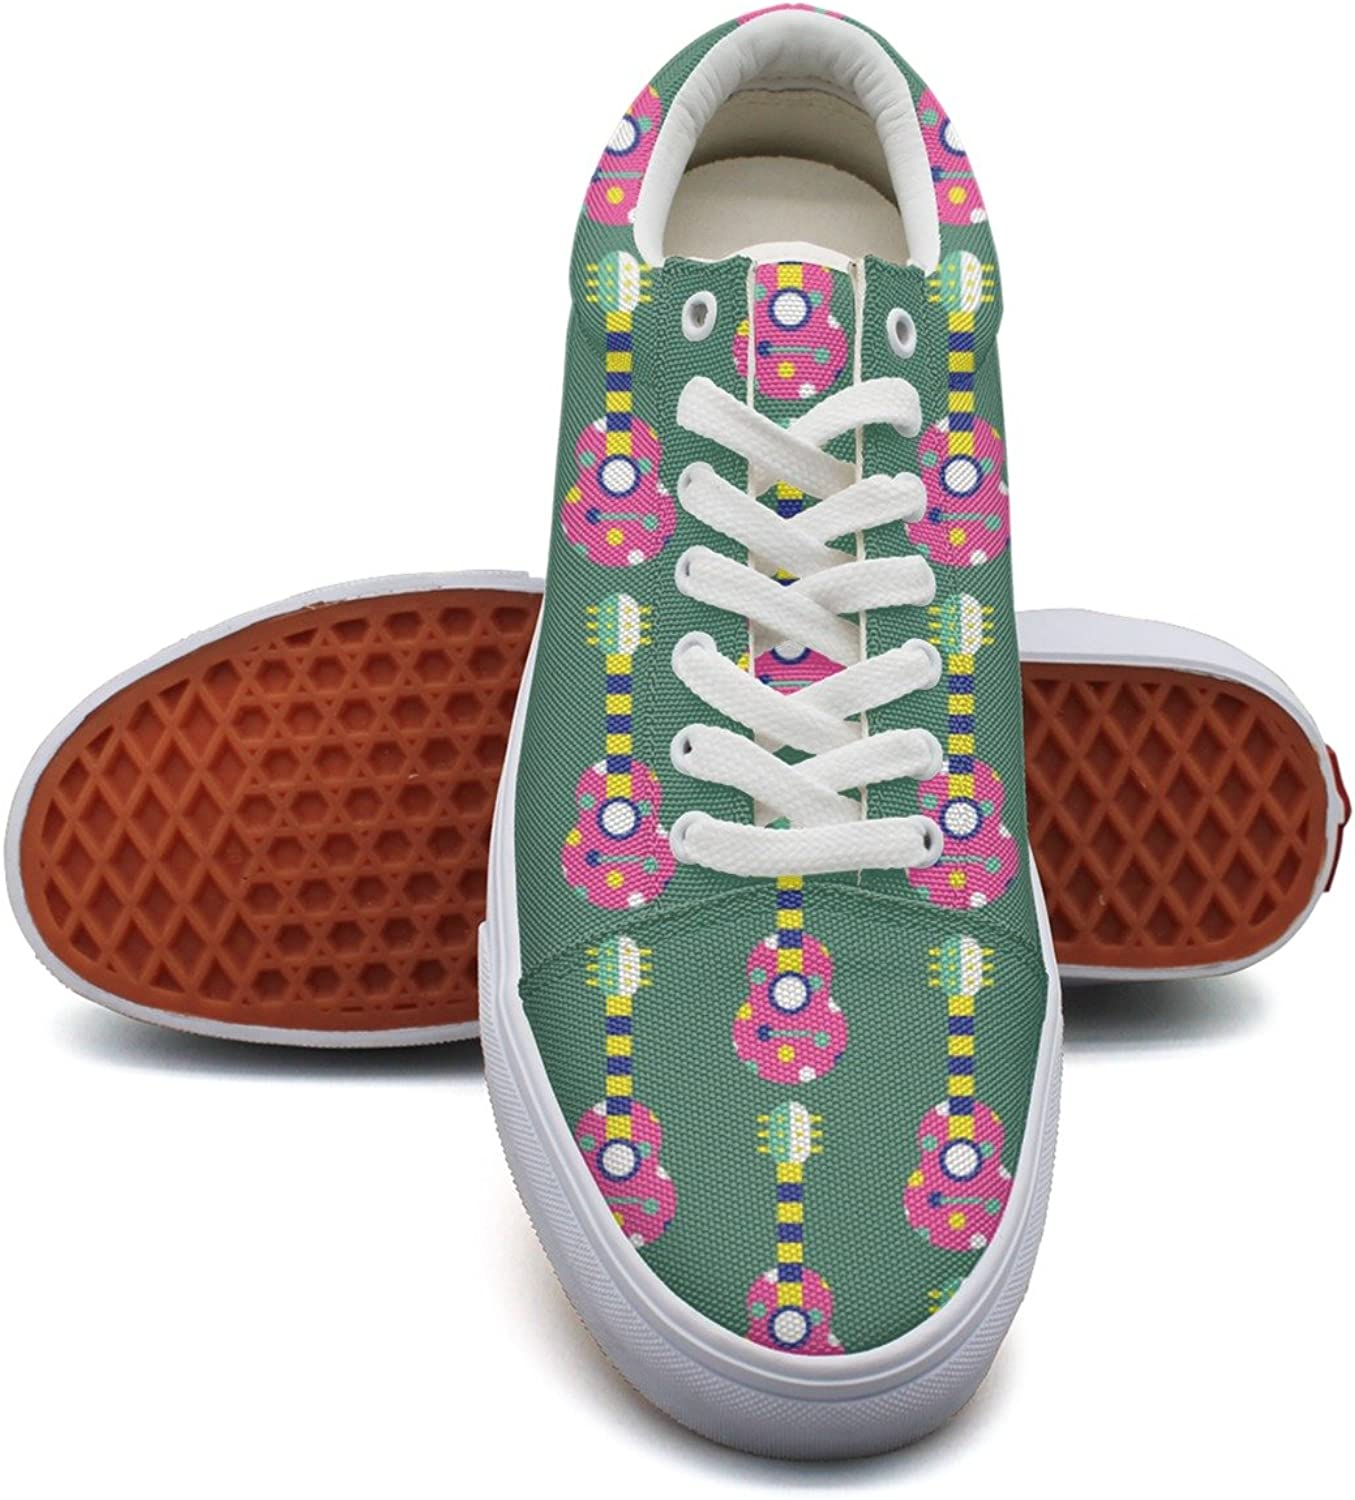 Guitar Green Womens Printed Canvas Running shoes Low Top Retro Sneakers shoes for Woman